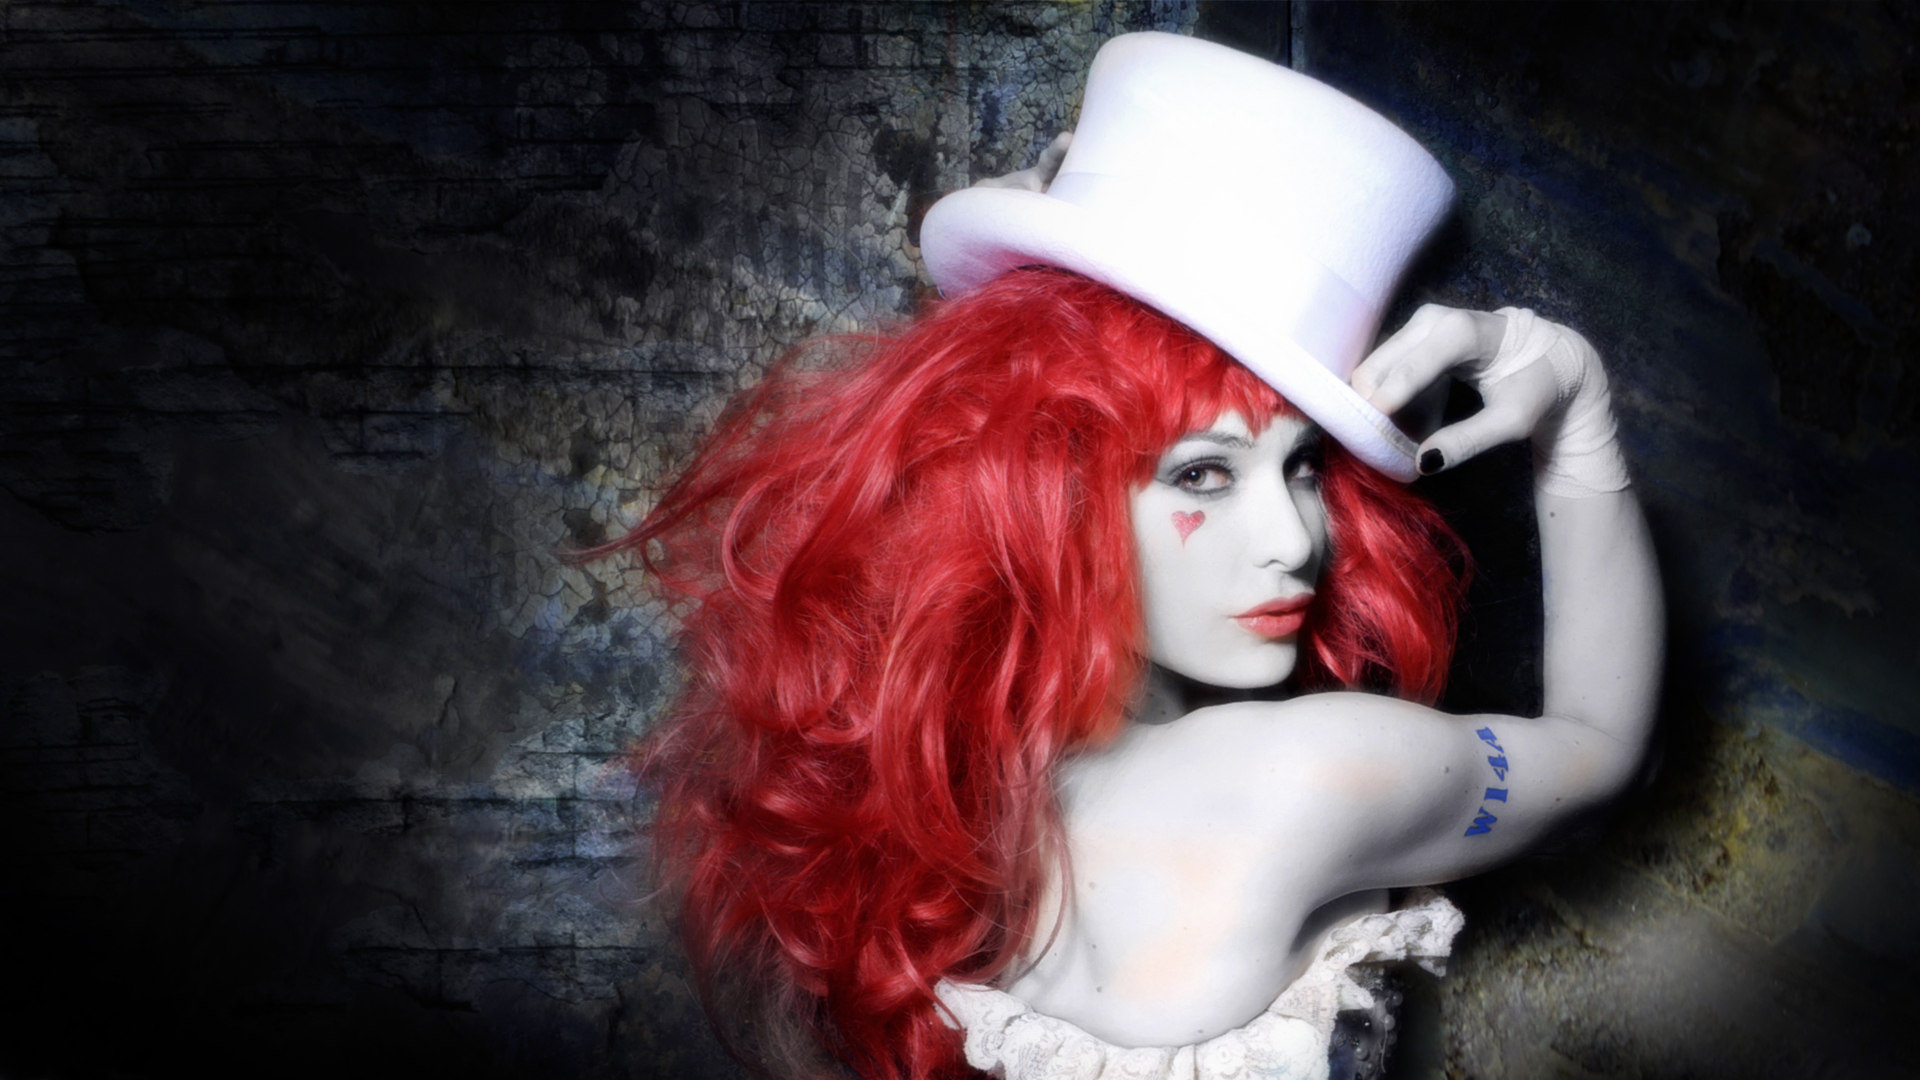 Music - Emilie Autumn  - Gorgeous - Babes - Pretty - Actress - Musician - Woman - Lady - Hot - Emilie - Red - Violin - Heart - Model - Entropy Wallpaper